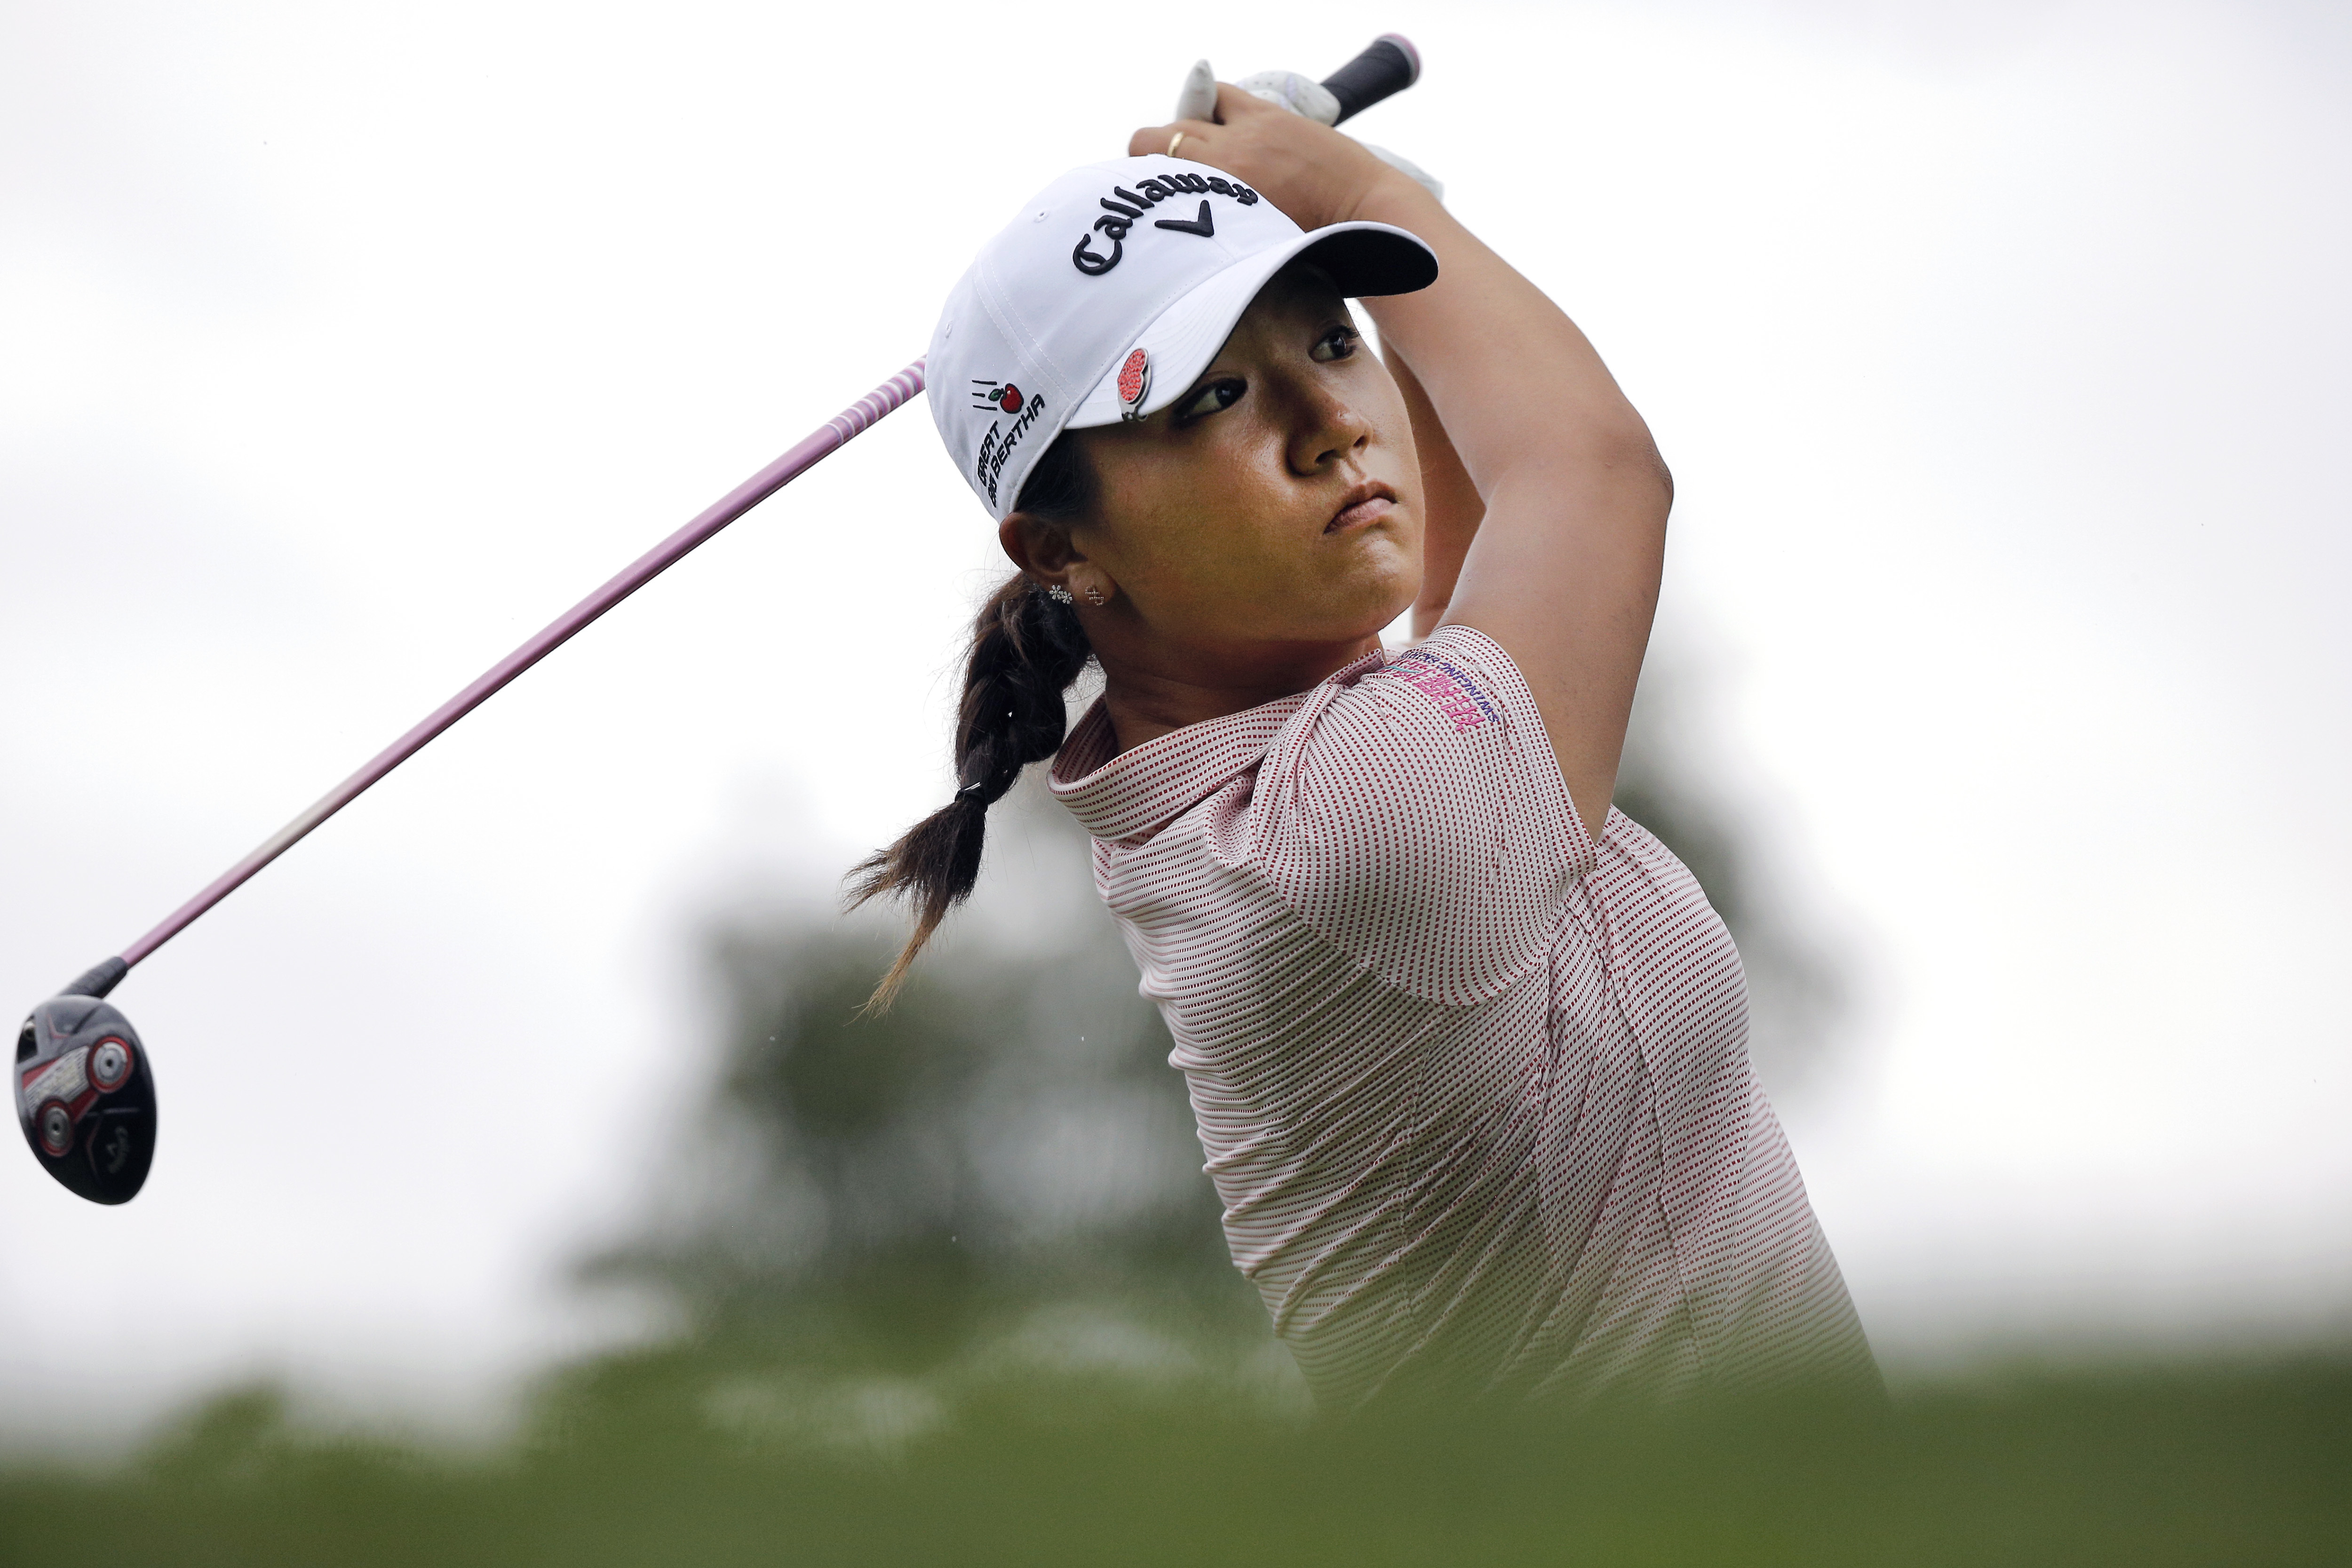 Lydia Ko, of New Zealand, follows her ball after playing on the 7th hole during the first round of the Evian Championship women's golf tournament in Evian, eastern France, Thursday, Sept. 15, 2016. (AP Photo/Laurent